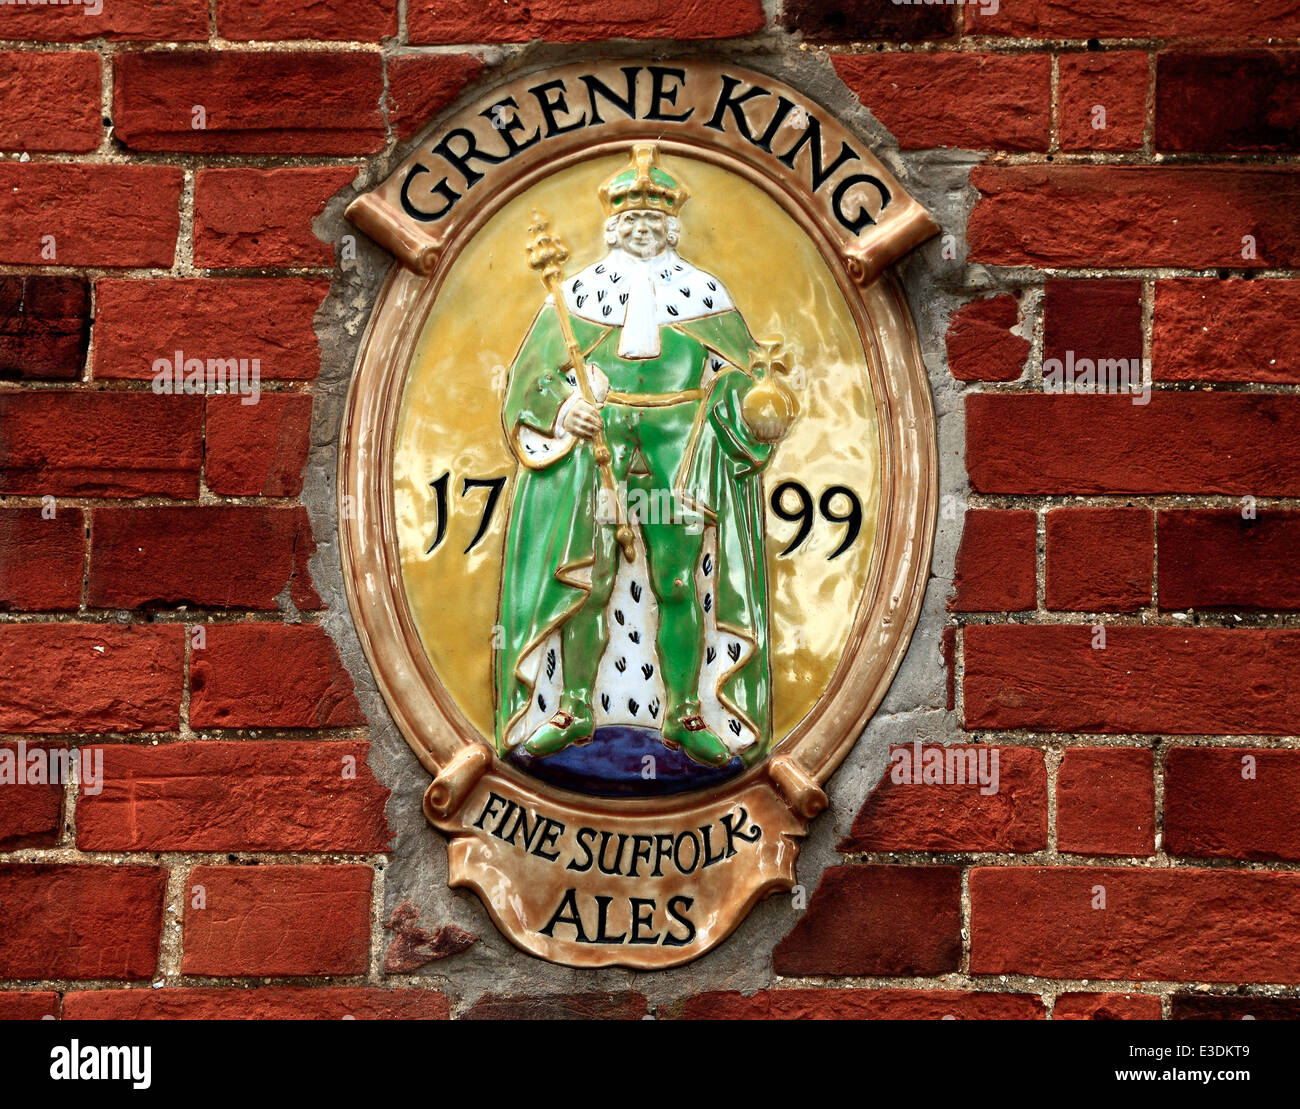 Greene King Brewery plaque, English breweries, Bury St. Edmunds, plaques, Suffolk, England UK - Stock Image